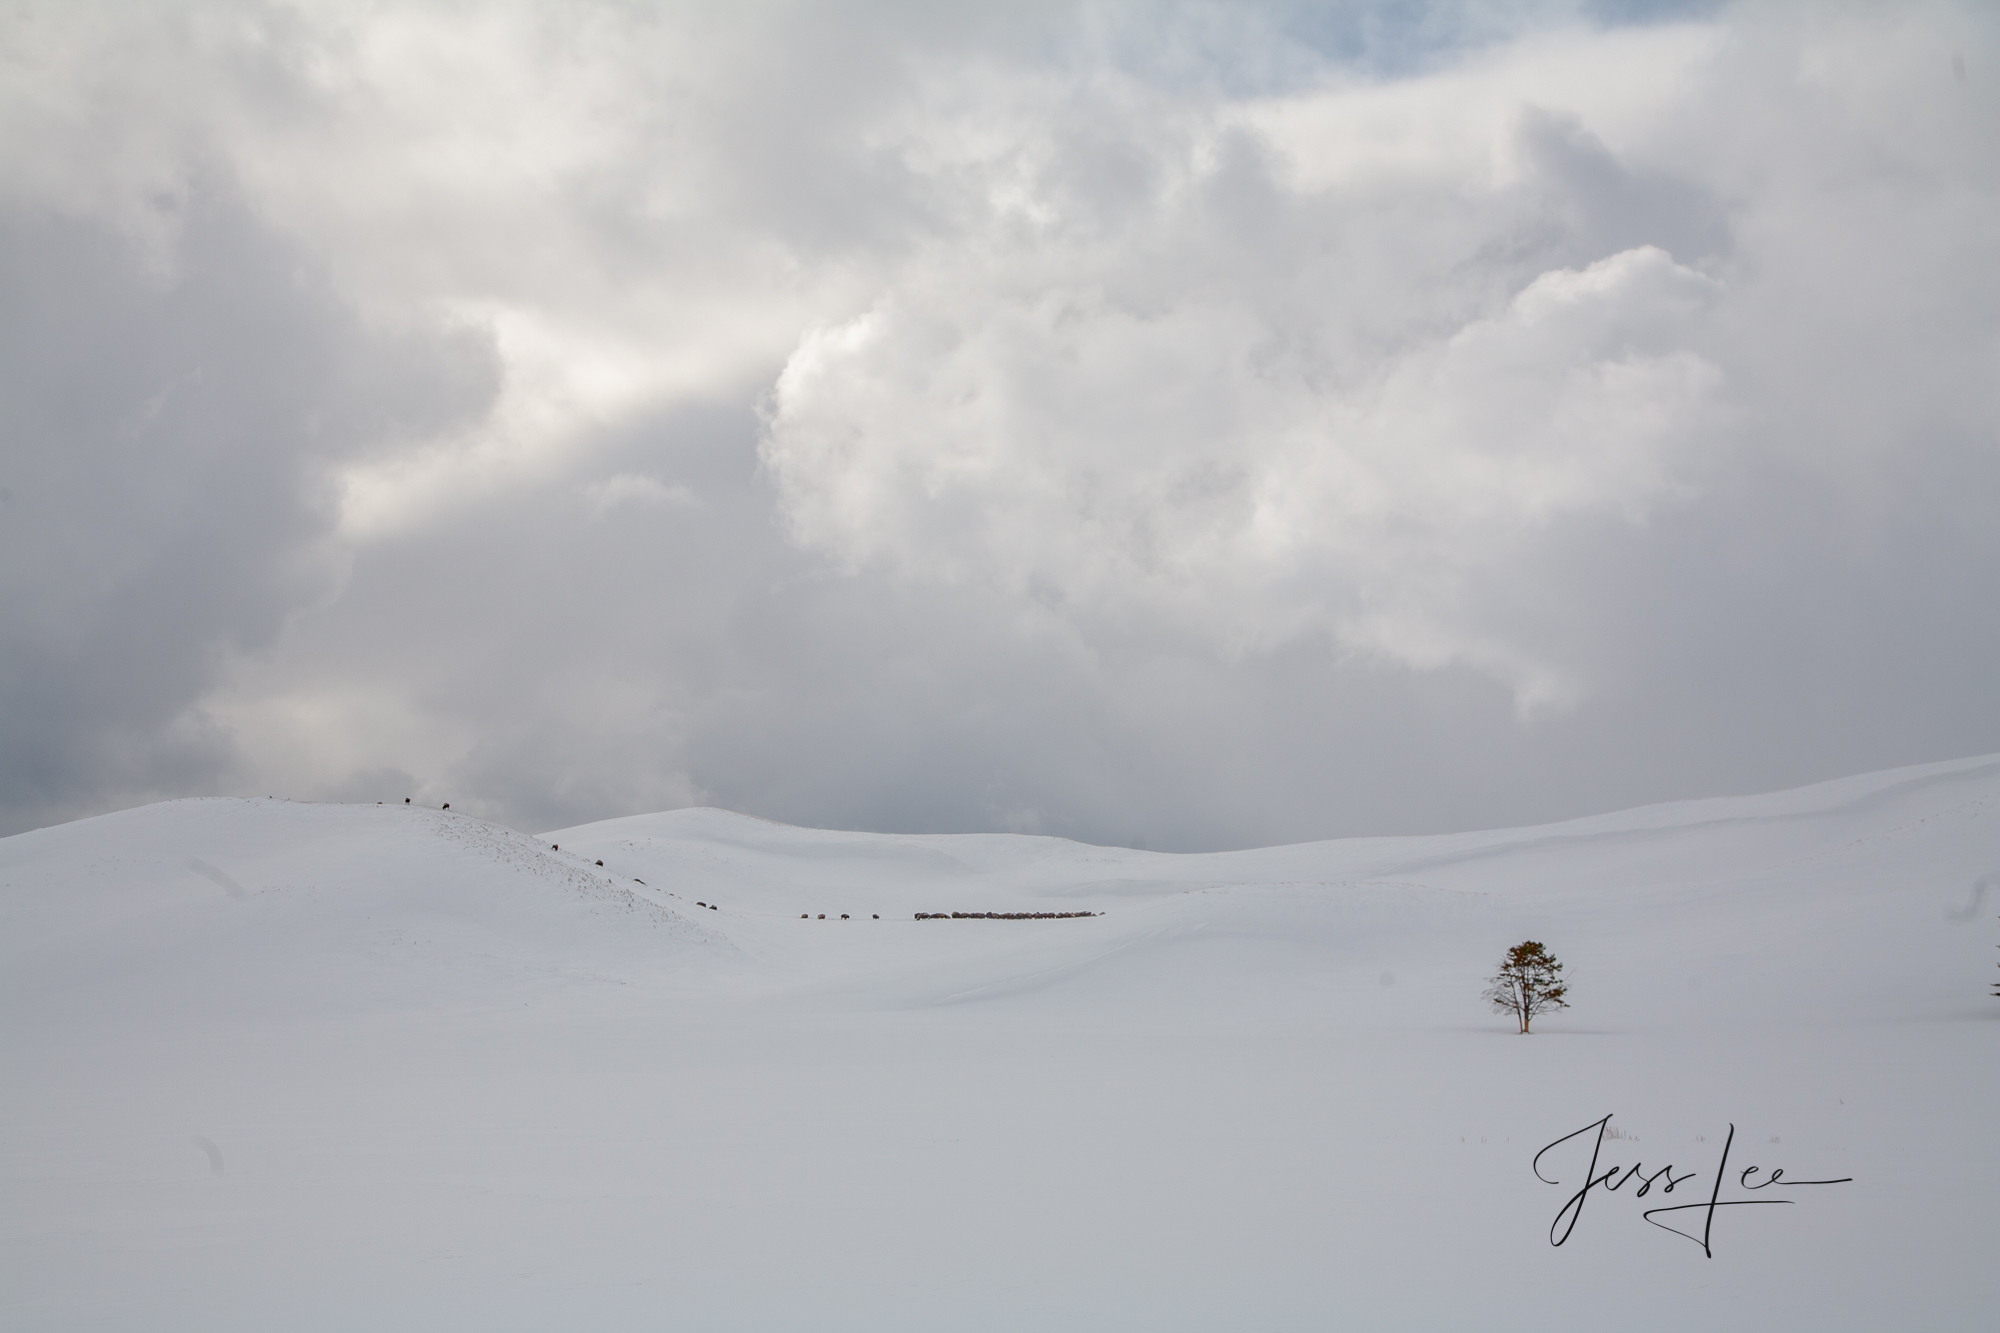 Yellowstone Bison in secluded valley in the winter wilderness of Hayden Valley. A Limited Edition of 800 Prints. These Basin...